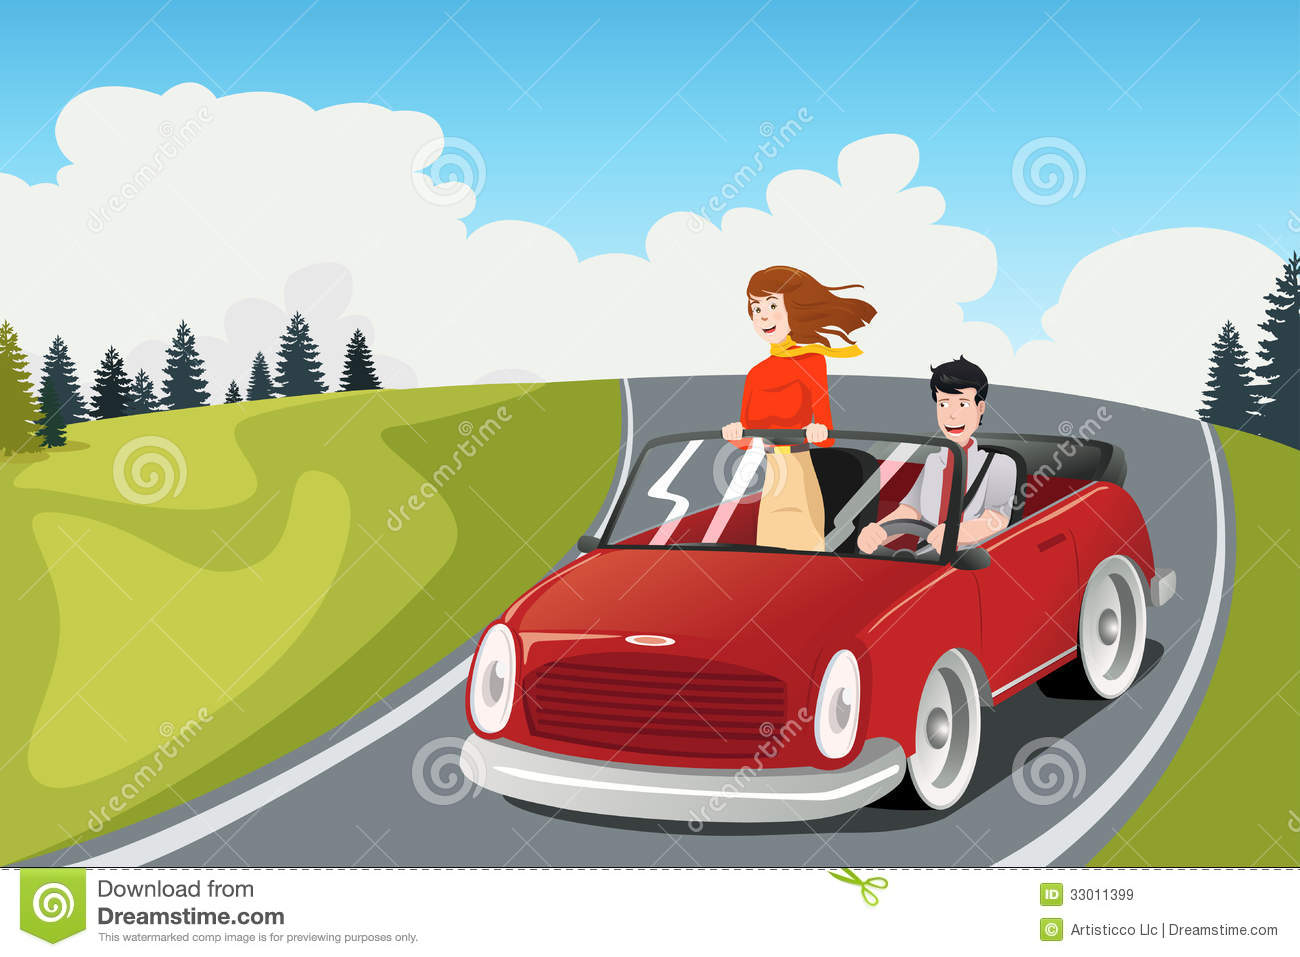 clipart car driving on road - photo #19